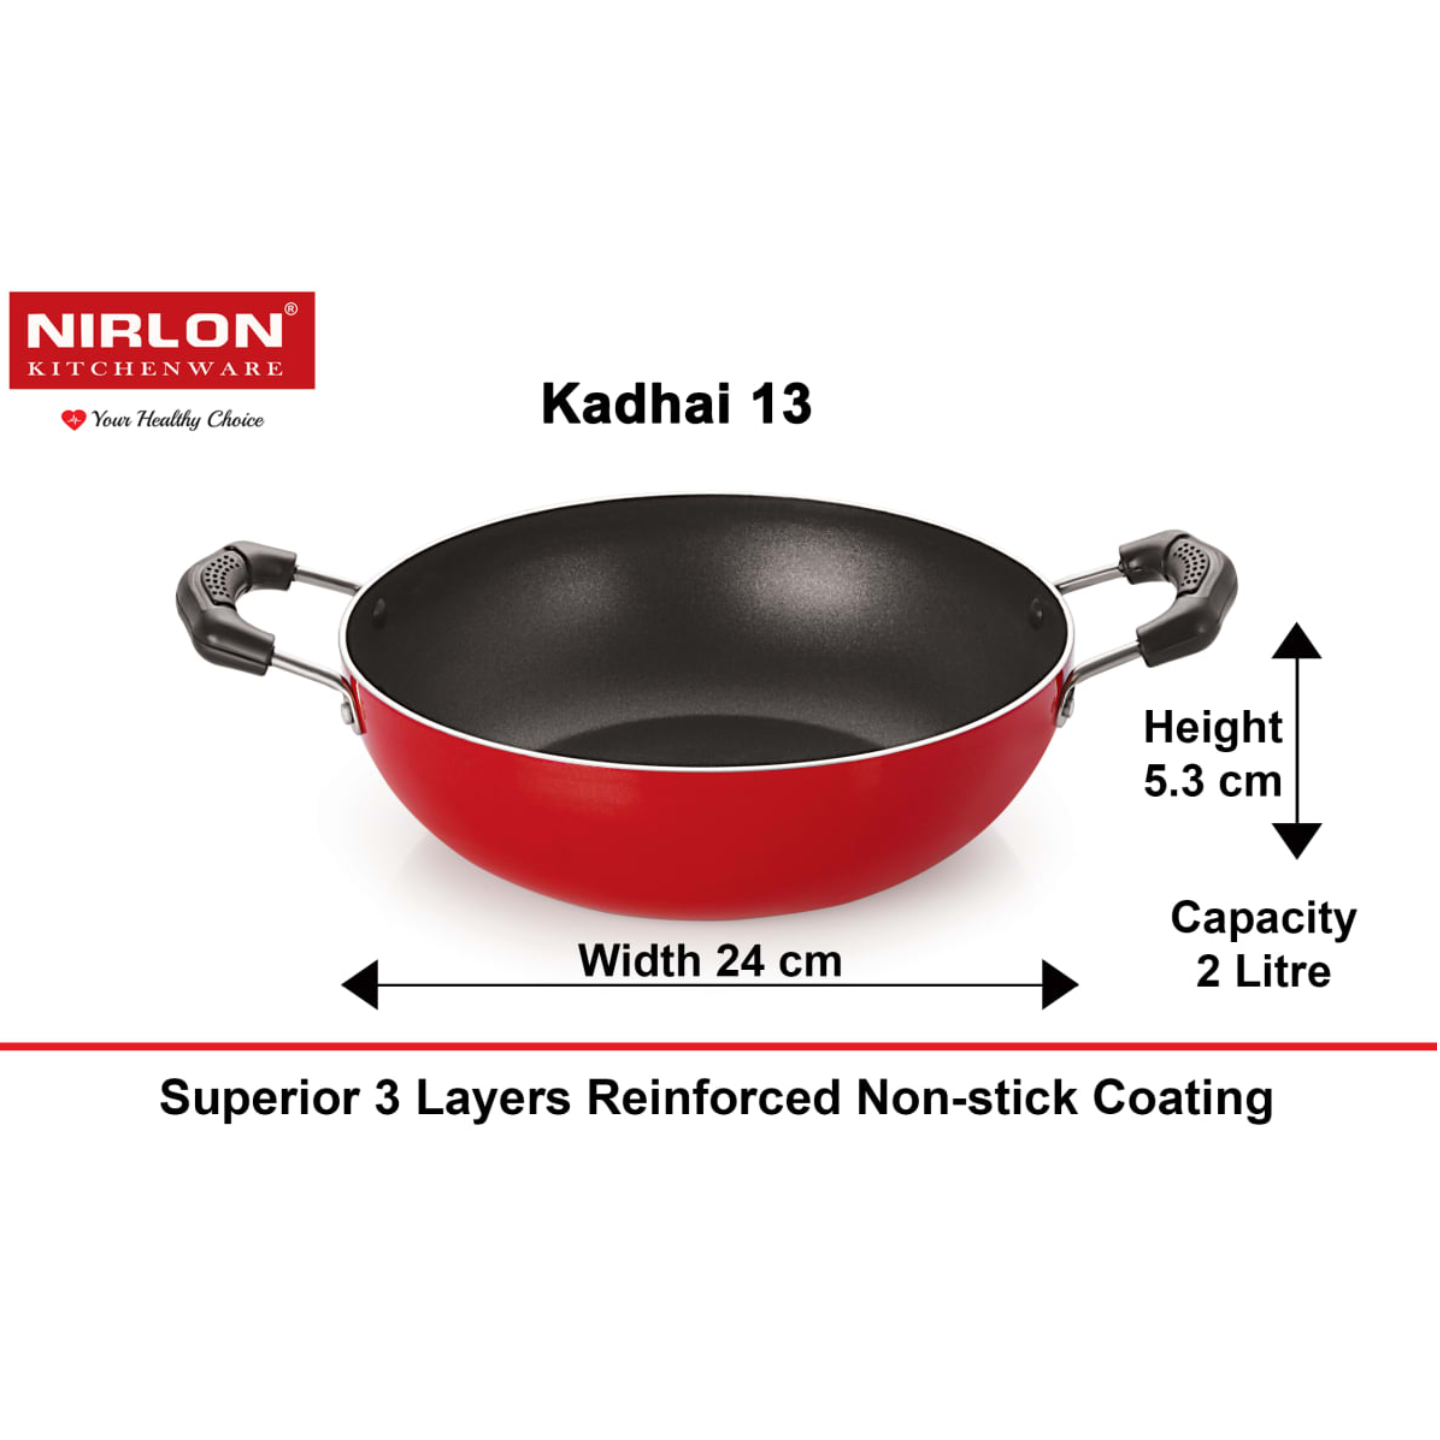 Nirlon Classic Range Kadhai 240mm, Product Weight ~507gm, Package Weight ~750gm, Non-Induction, Color- Red/Black, with Bakelite Handle (2.6mm_KD13)